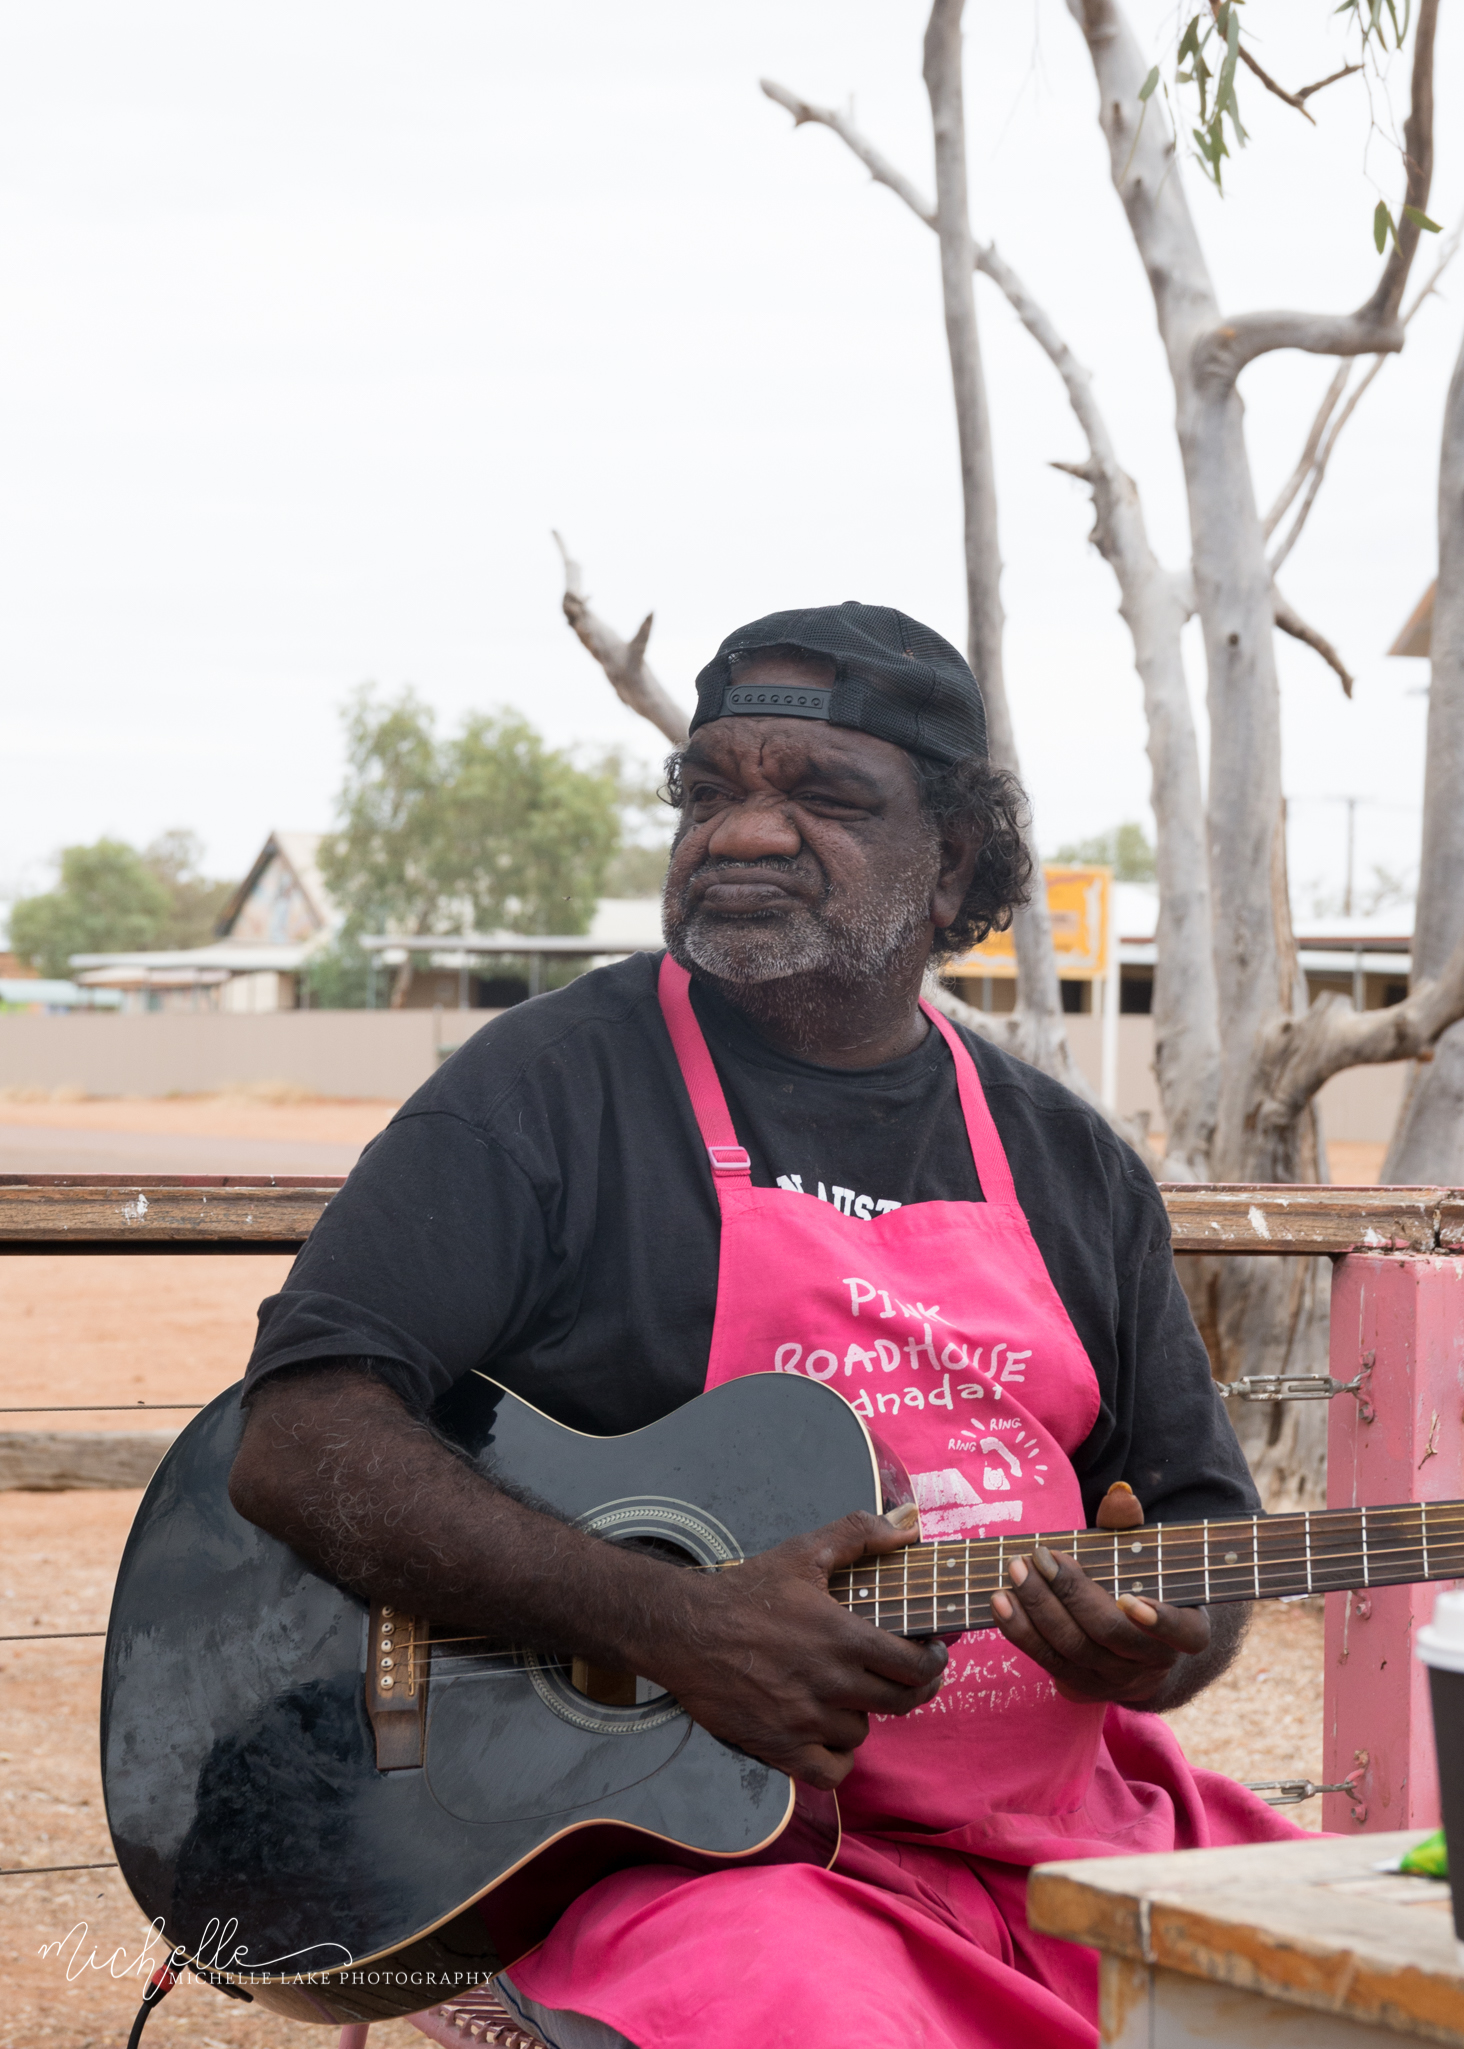 Geoffrey - The Pink Roadhouse, Oodnadatta SA